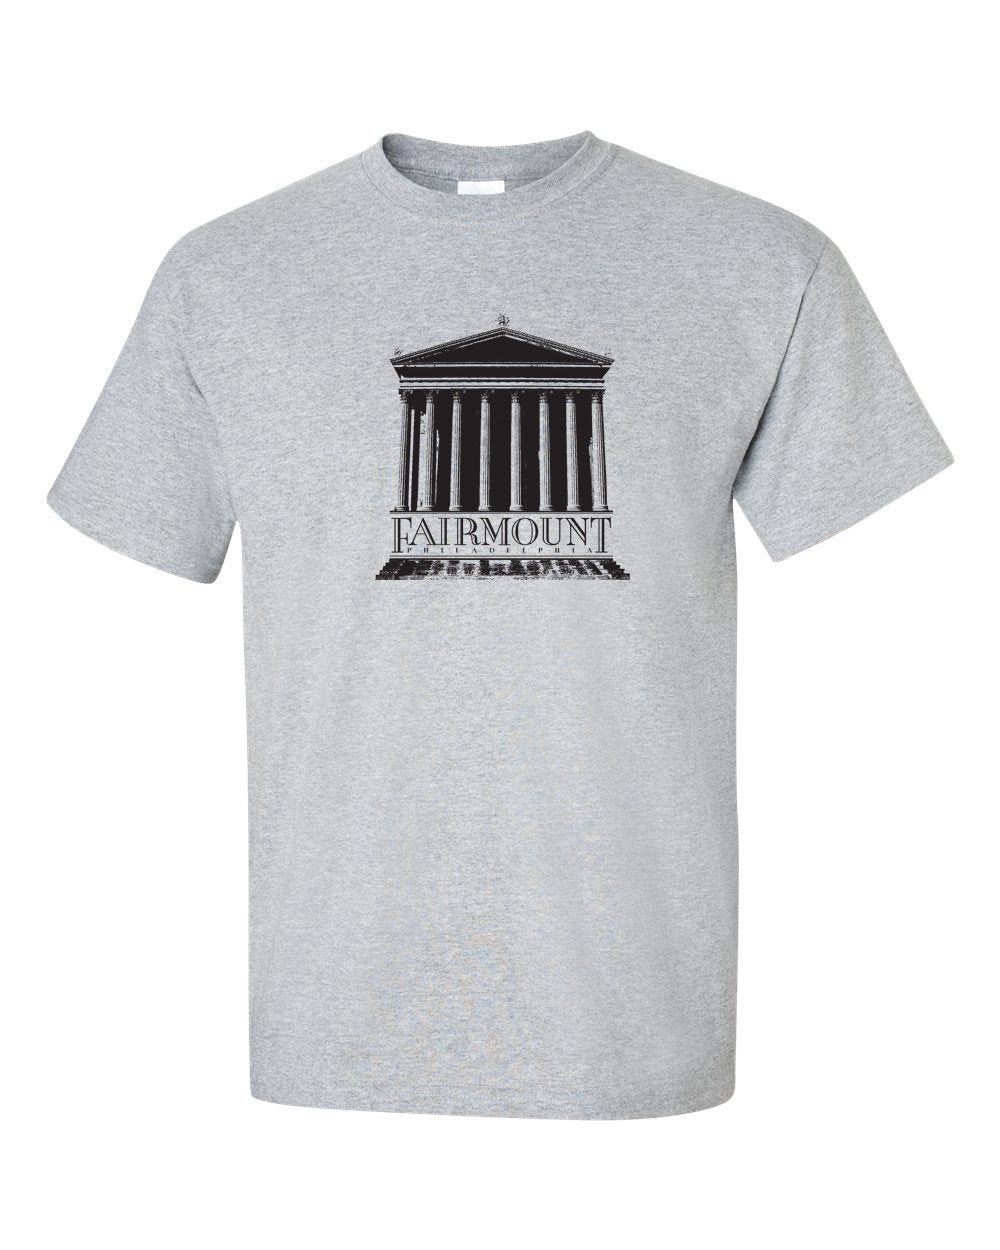 Fairmount Mens/Unisex T-Shirt